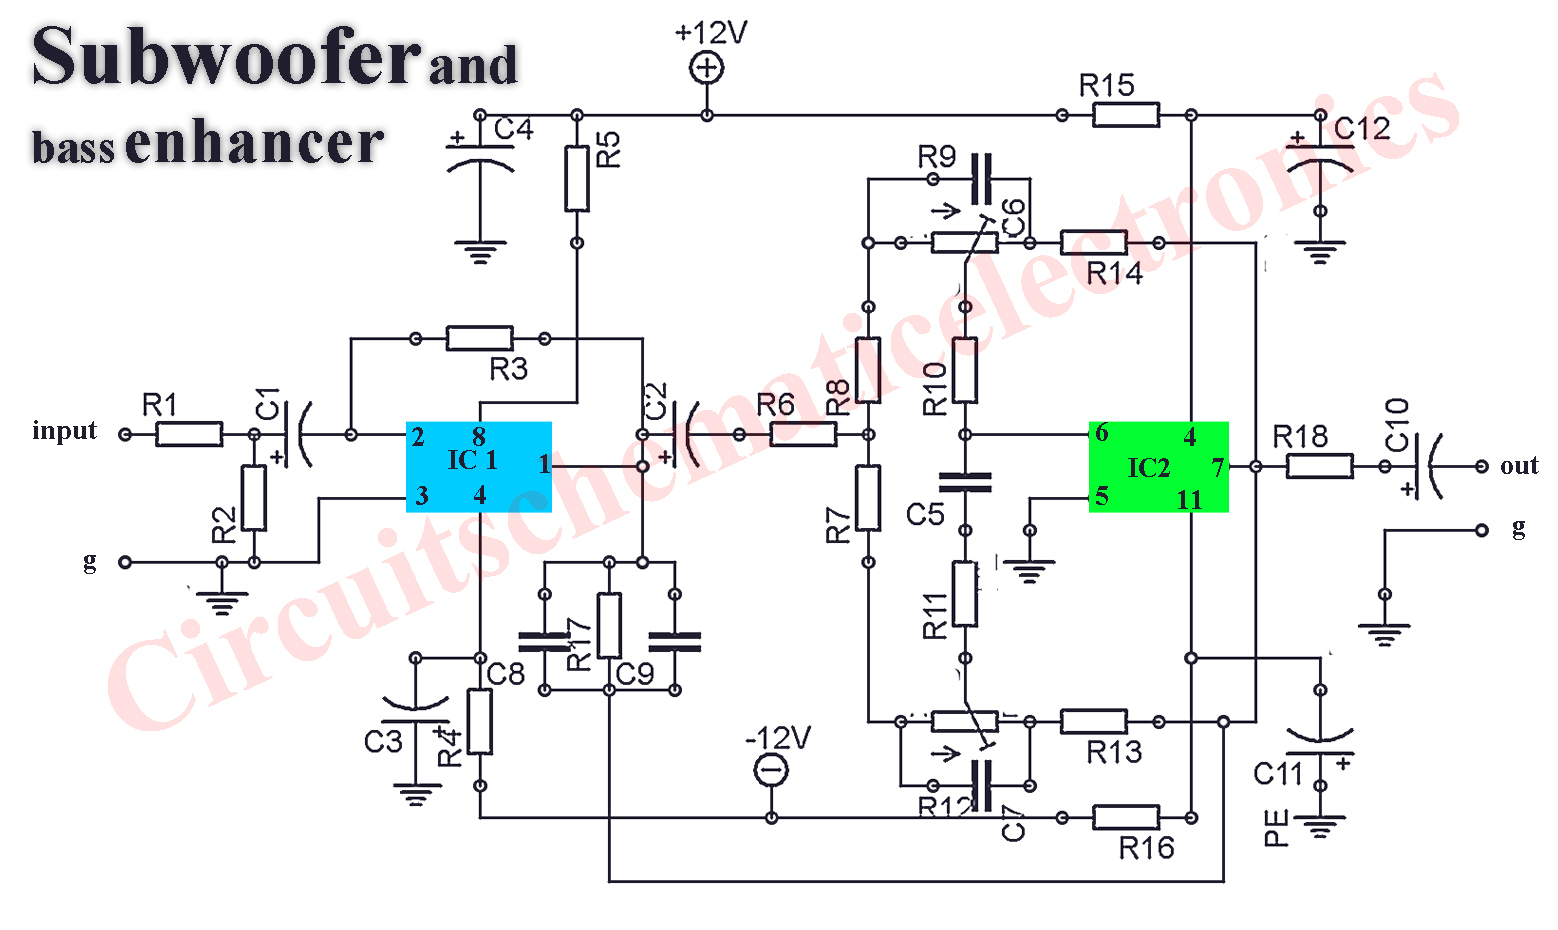 hight resolution of passive subwoofer wiring diagram rockville powered subwoofer hight resolution of subwoofer preamp filter circuit schematic electronics